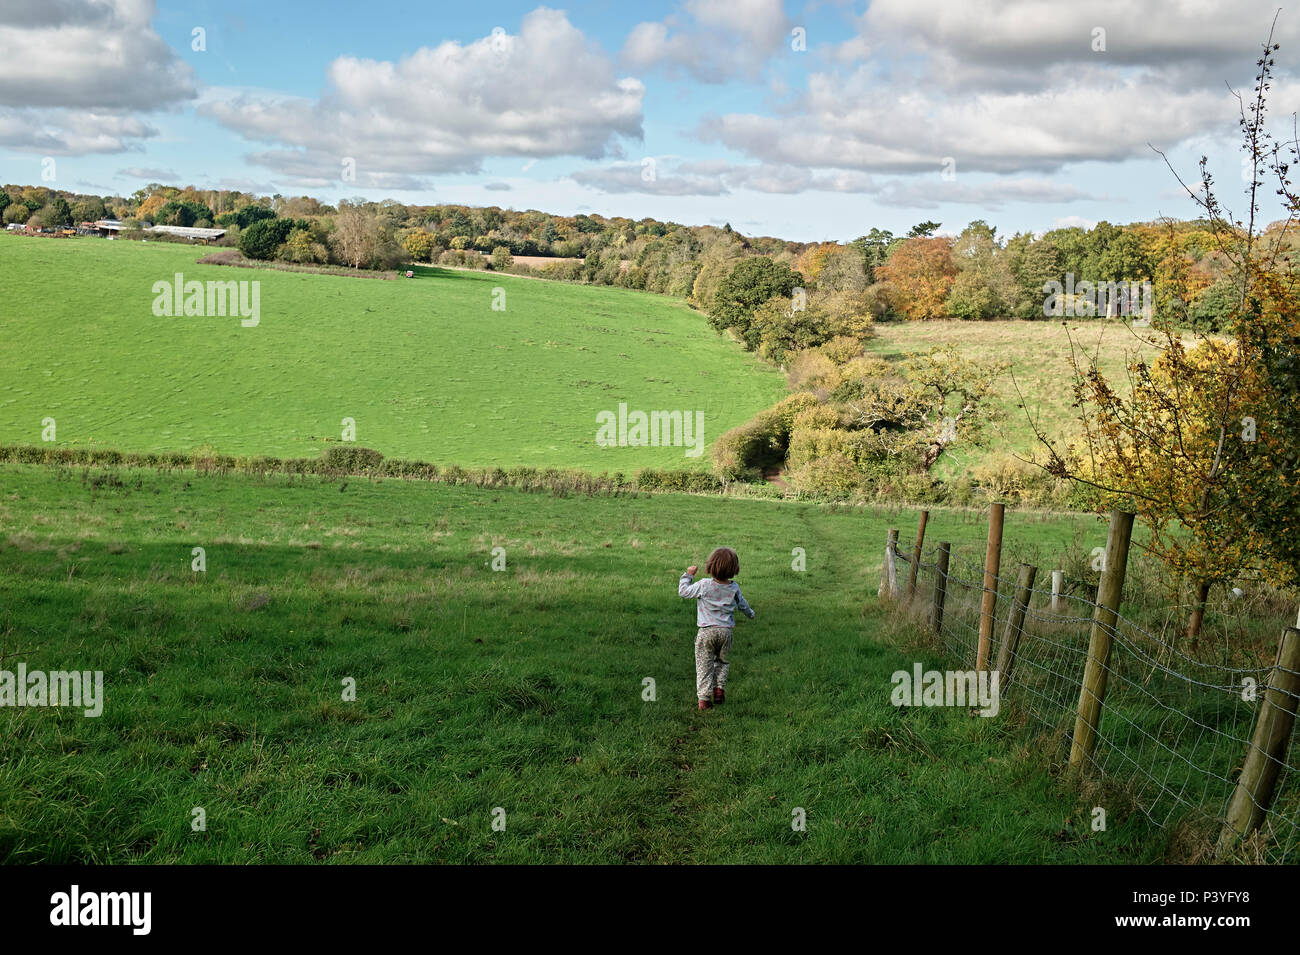 Reading, Berkshire, Chiltern hills. Young child playing in English countryside. - Stock Image